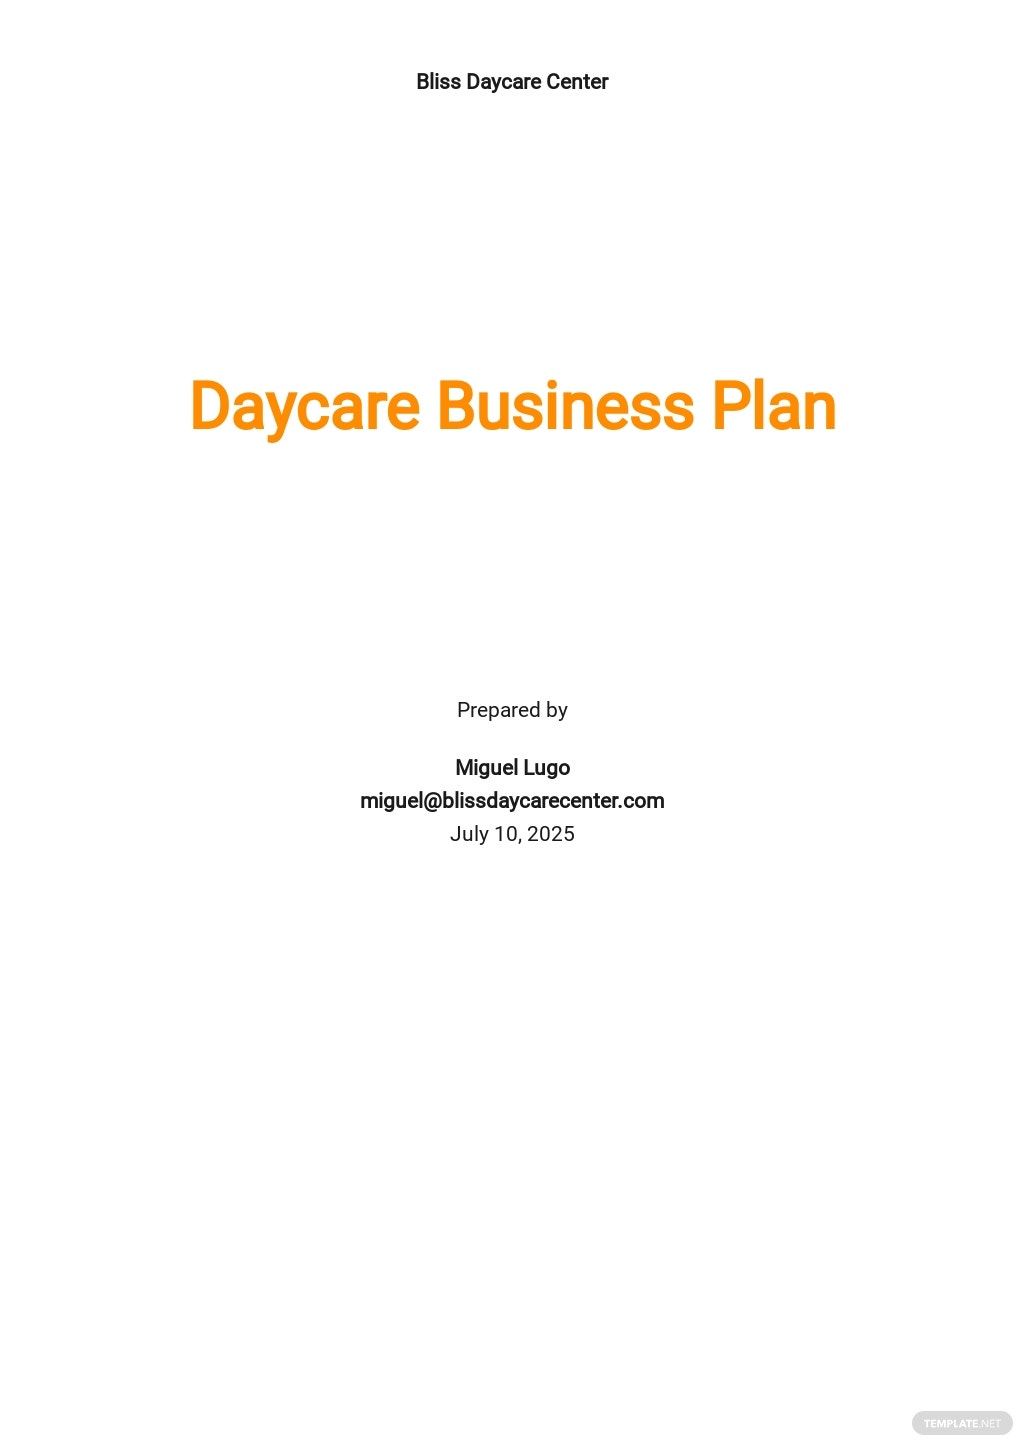 Daycare Business Plan Template.jpe